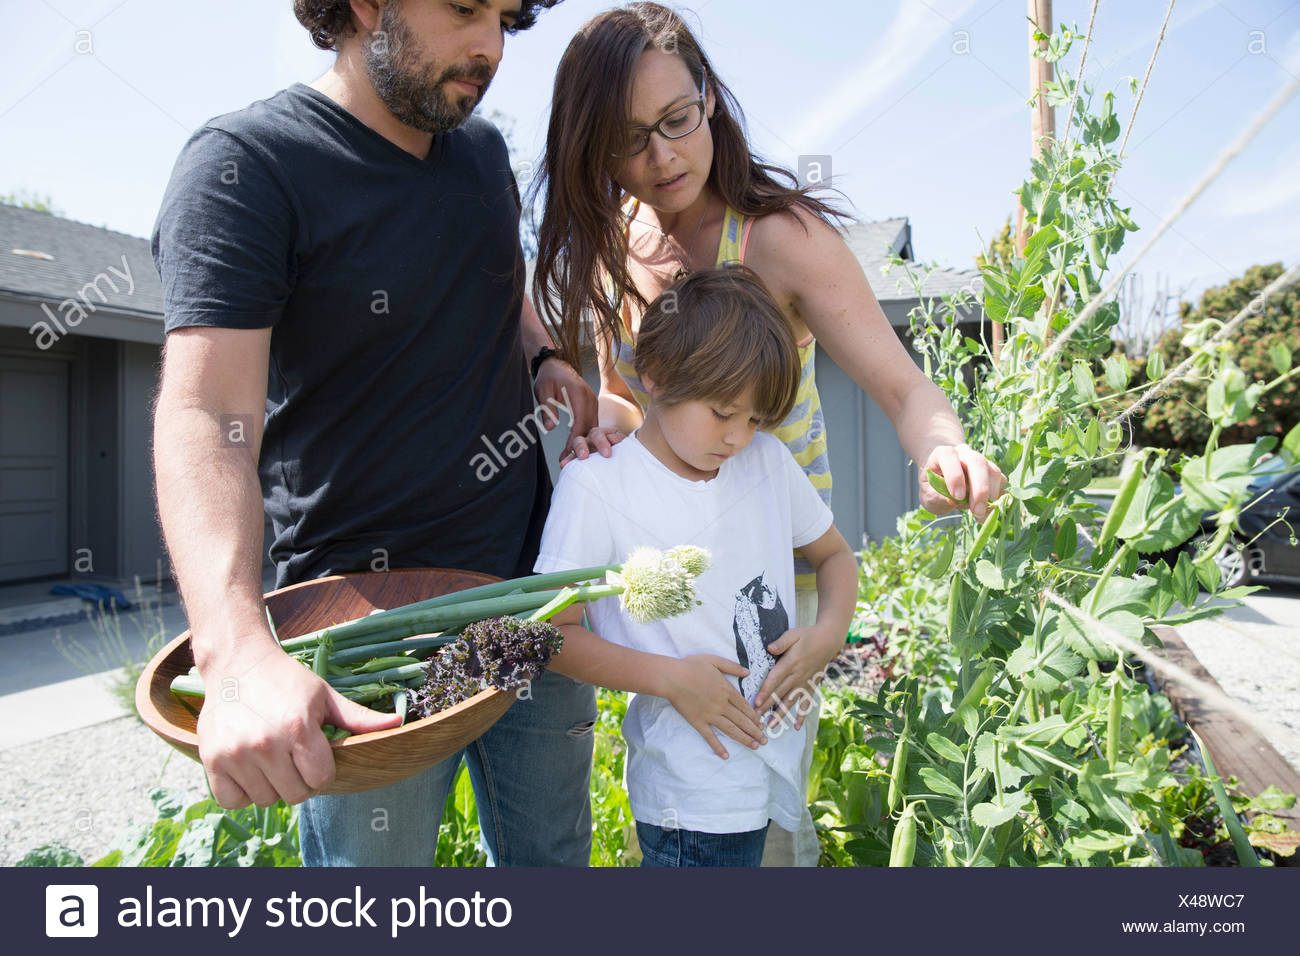 Family with one boy picking peas in garden - Stock Image